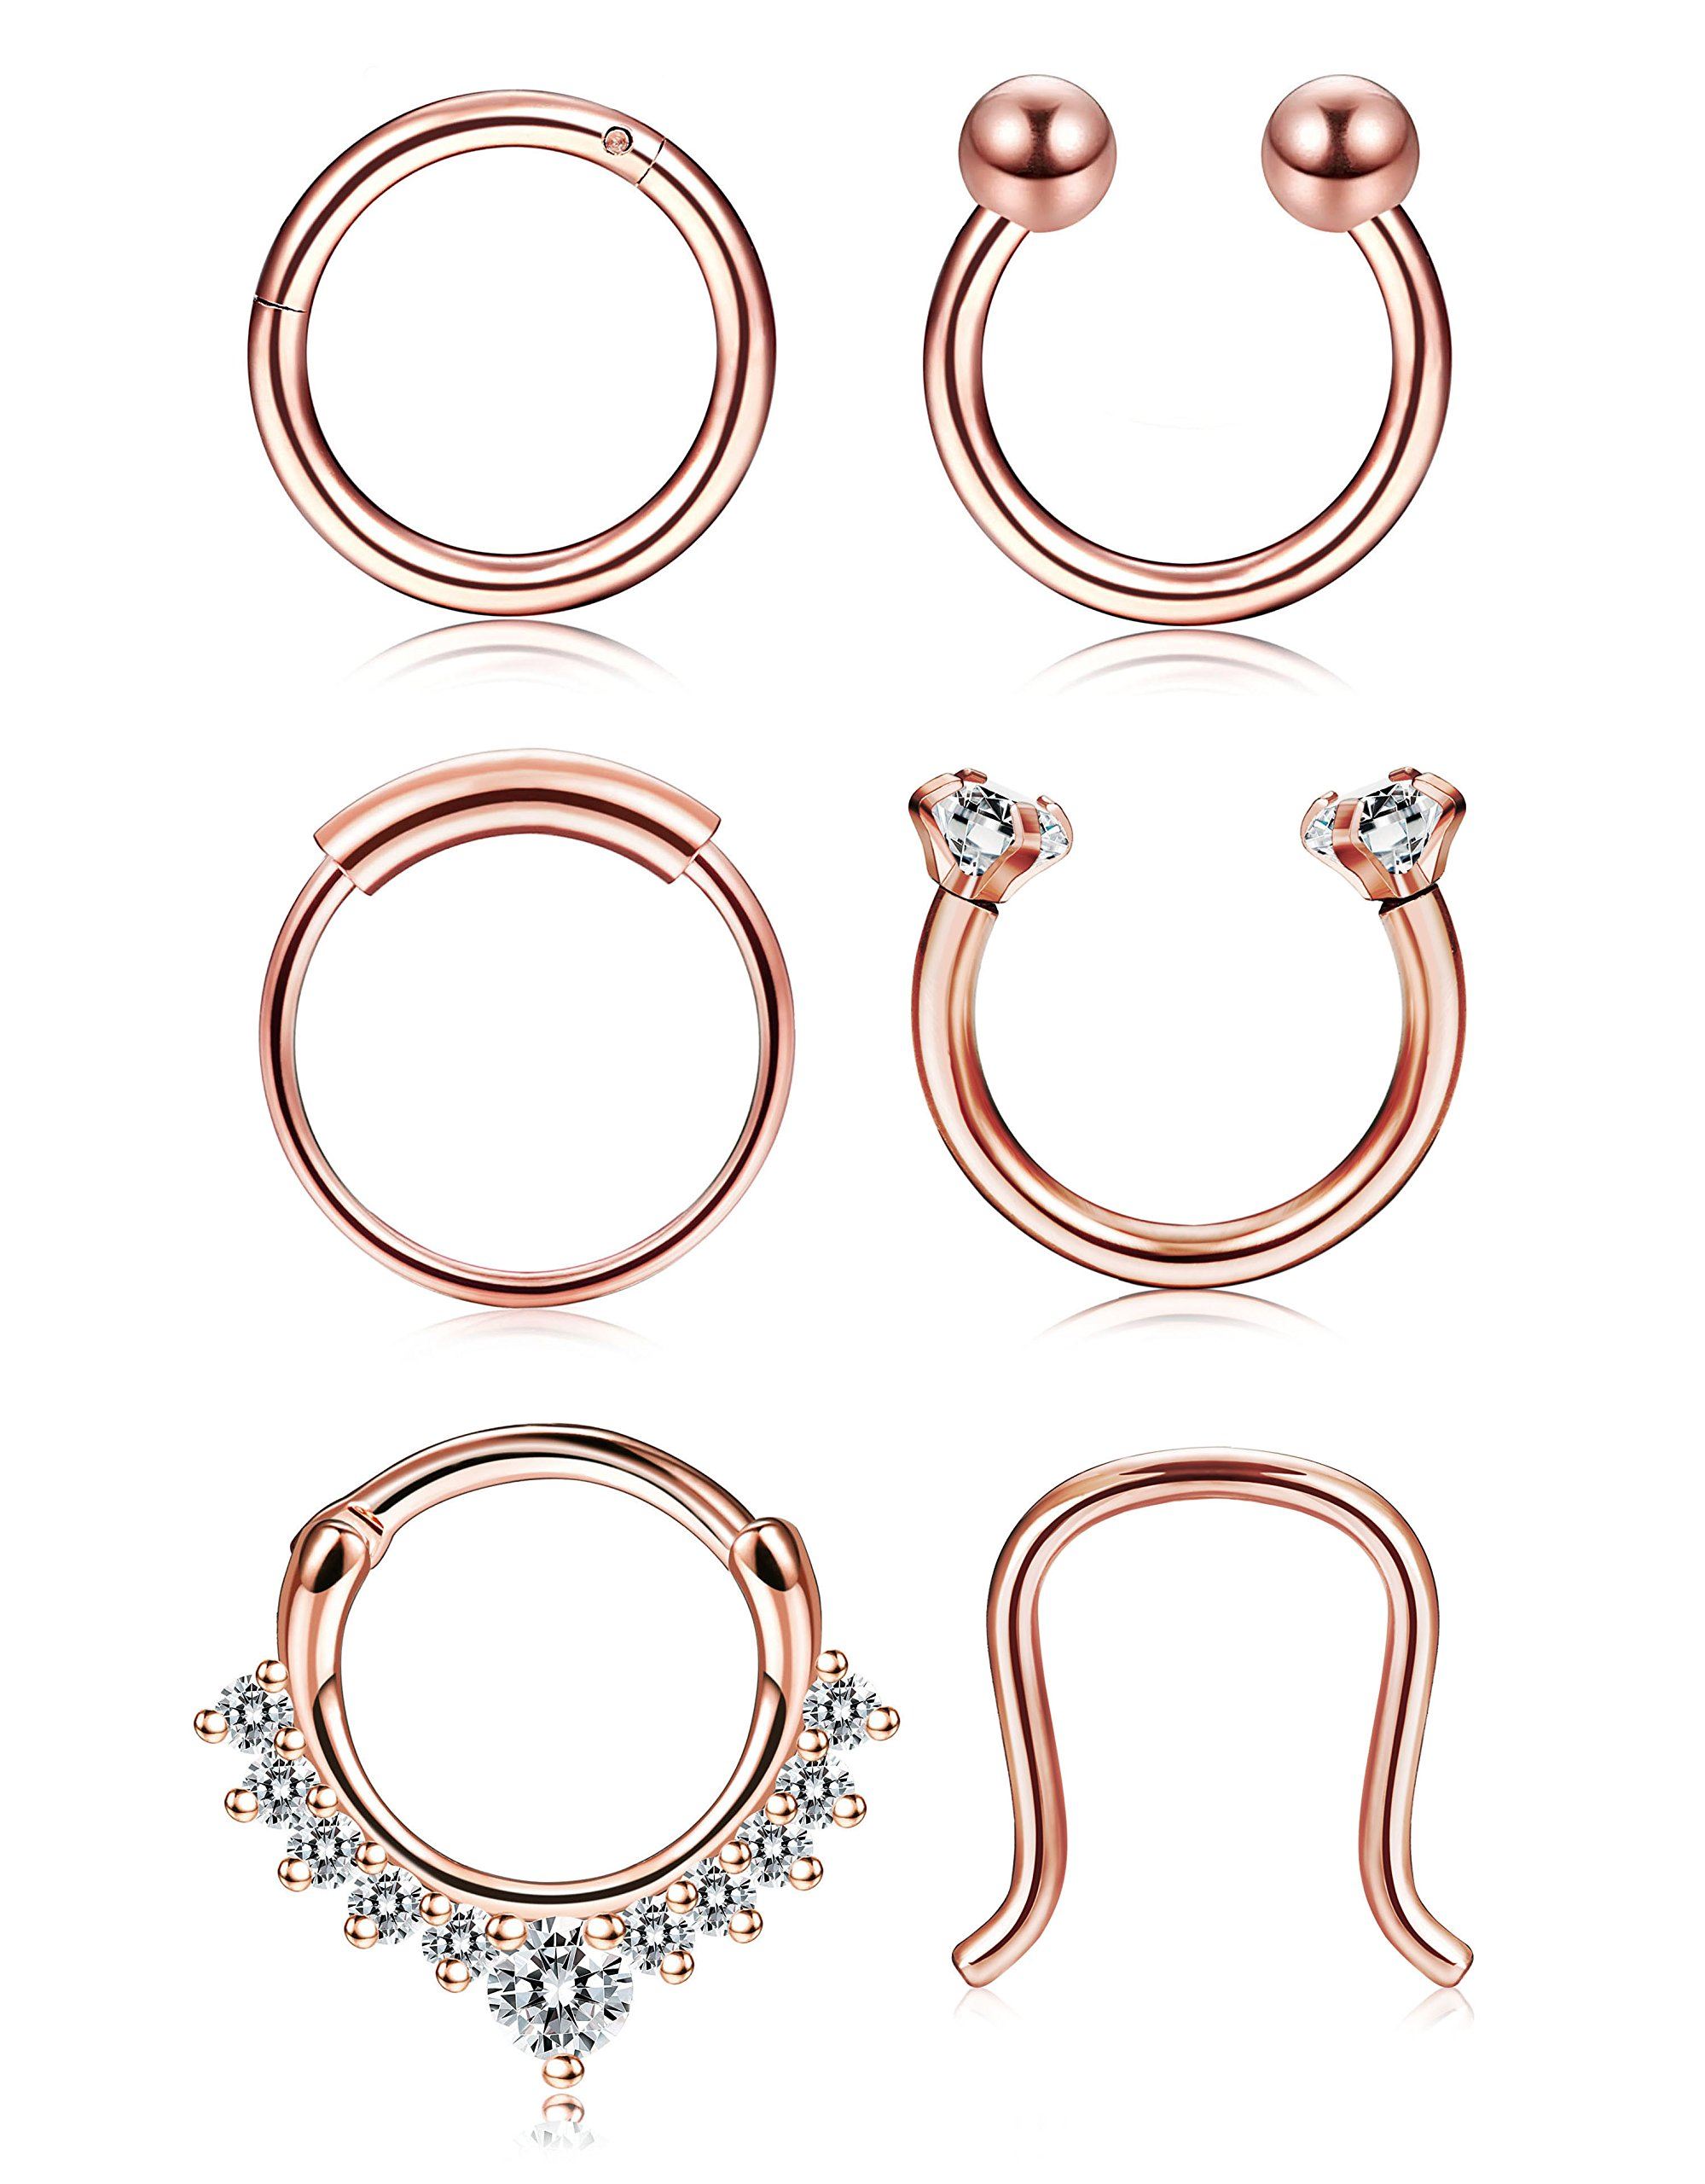 Thunaraz 4-6Pcs 316L Stainless Steel Septum Piercing Nose Rings Hoop Cartilage Tragus Retainer Body Piercing Jewelry 8MM 16G (A: 6Pcs Rose Gold Tone) by Thunaraz